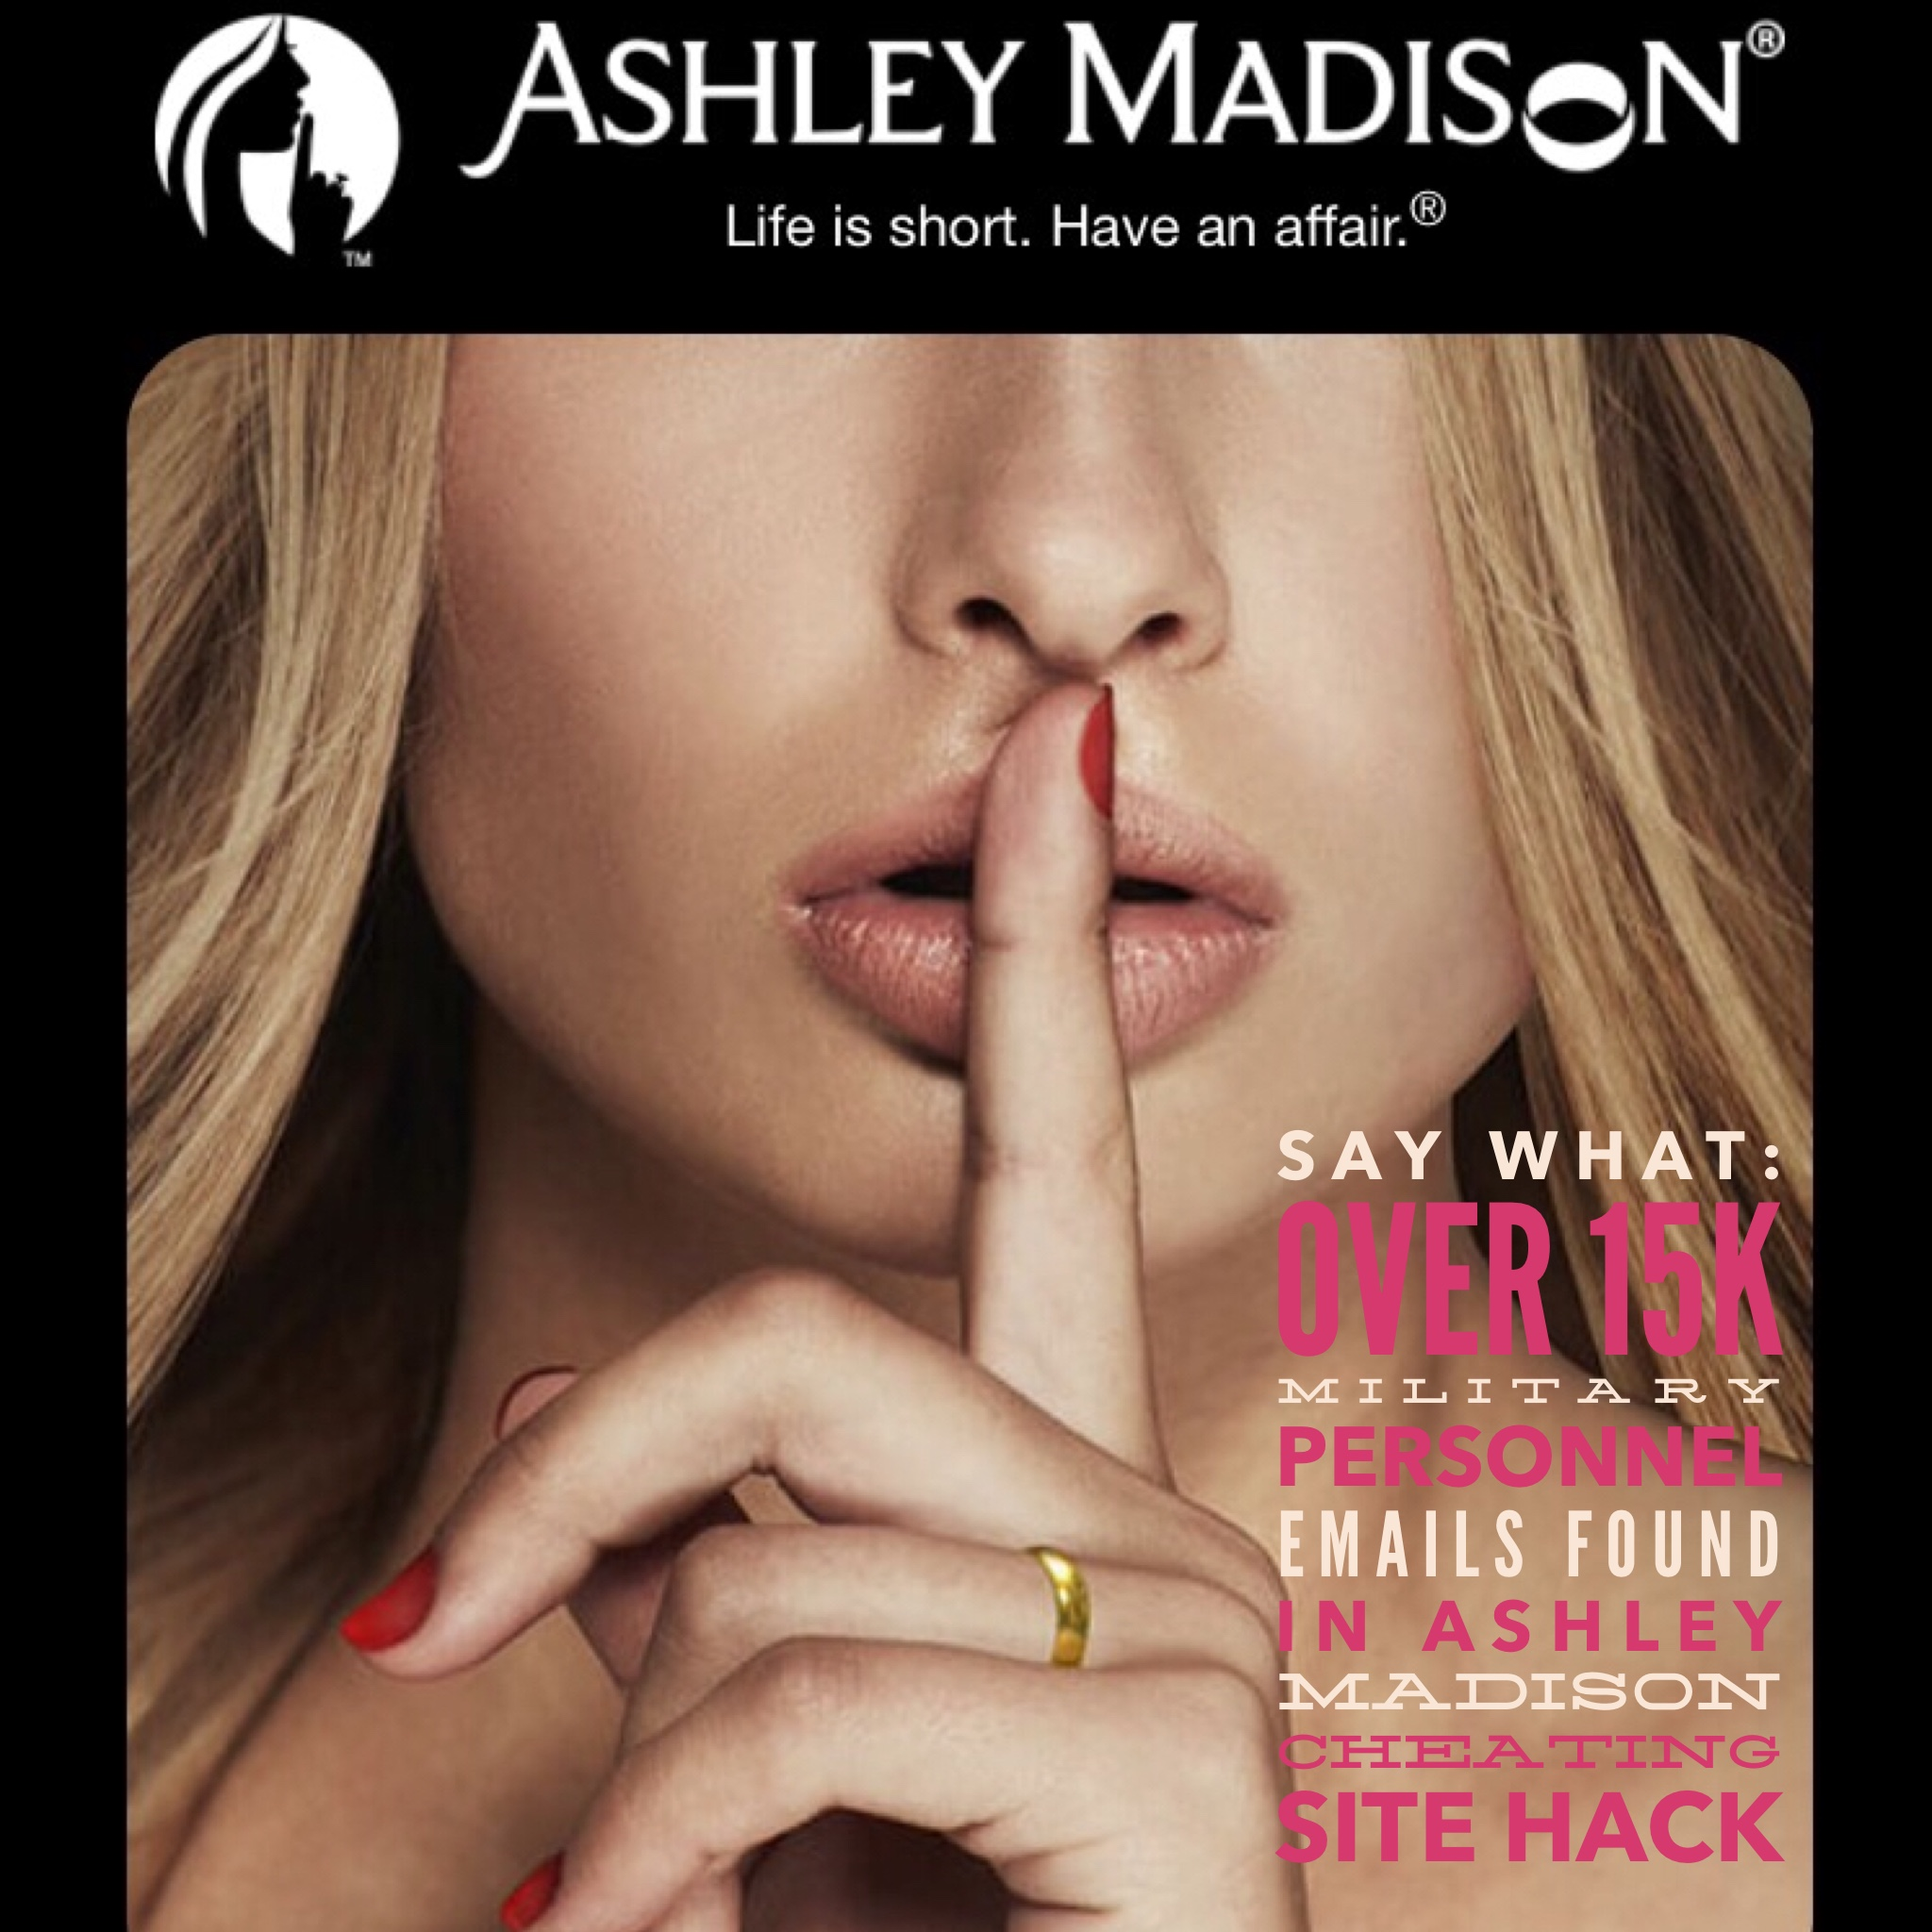 Say What: Over 15,000 Military Personnel Emails Found To Be Used On Adultery Site Ashley Madison